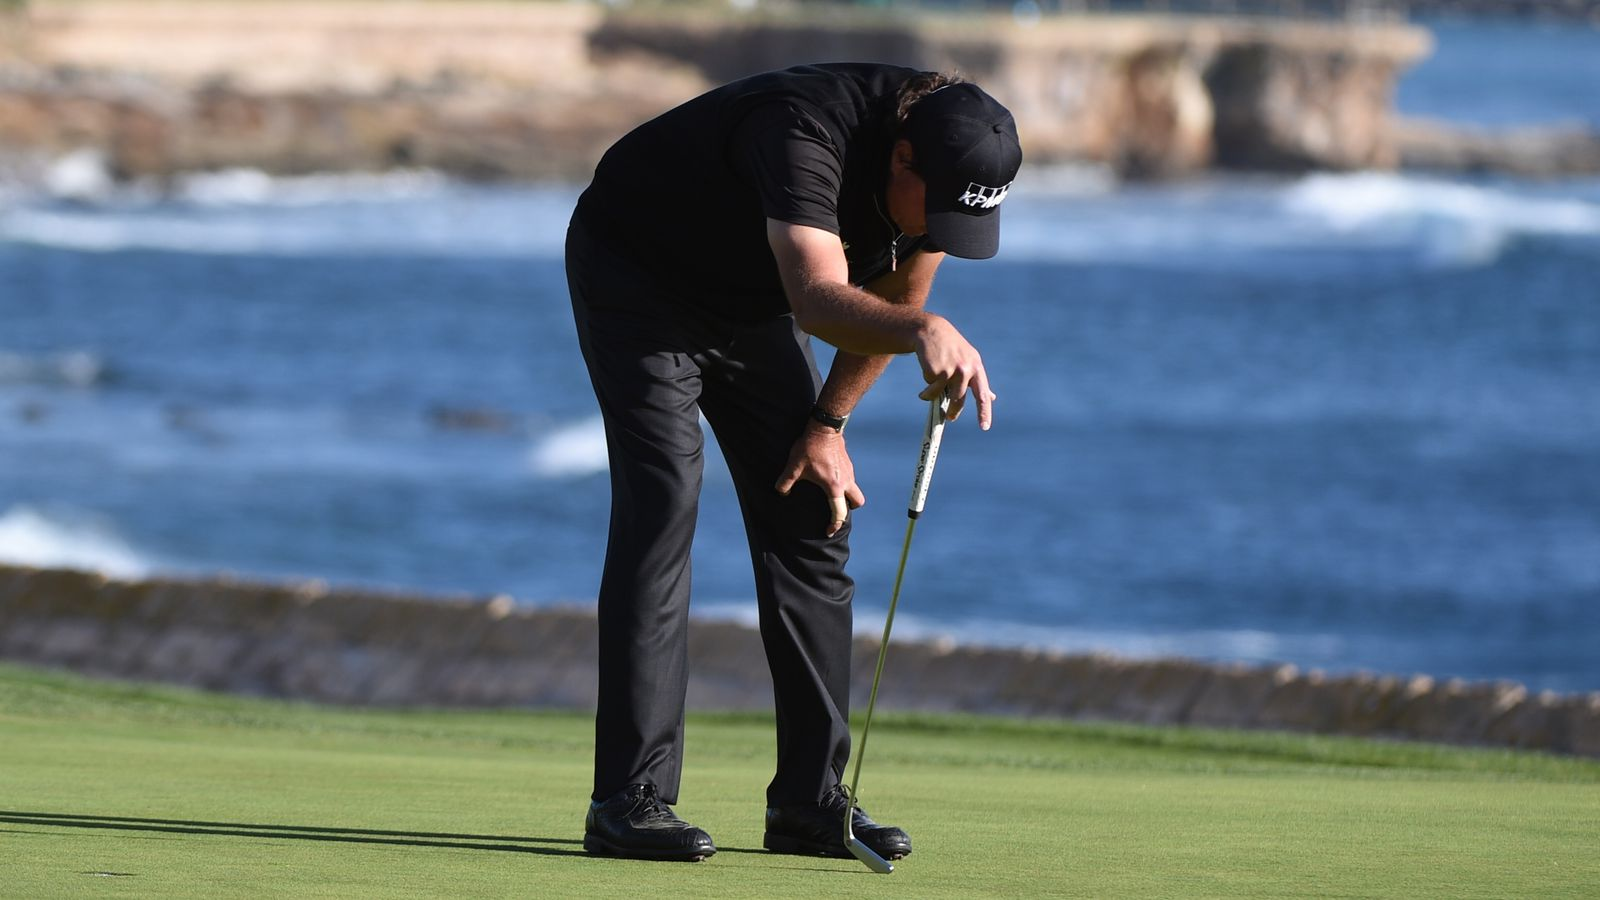 2016 pebble beach pro am results what we learned from phil mickelson 39 s giveaway. Black Bedroom Furniture Sets. Home Design Ideas